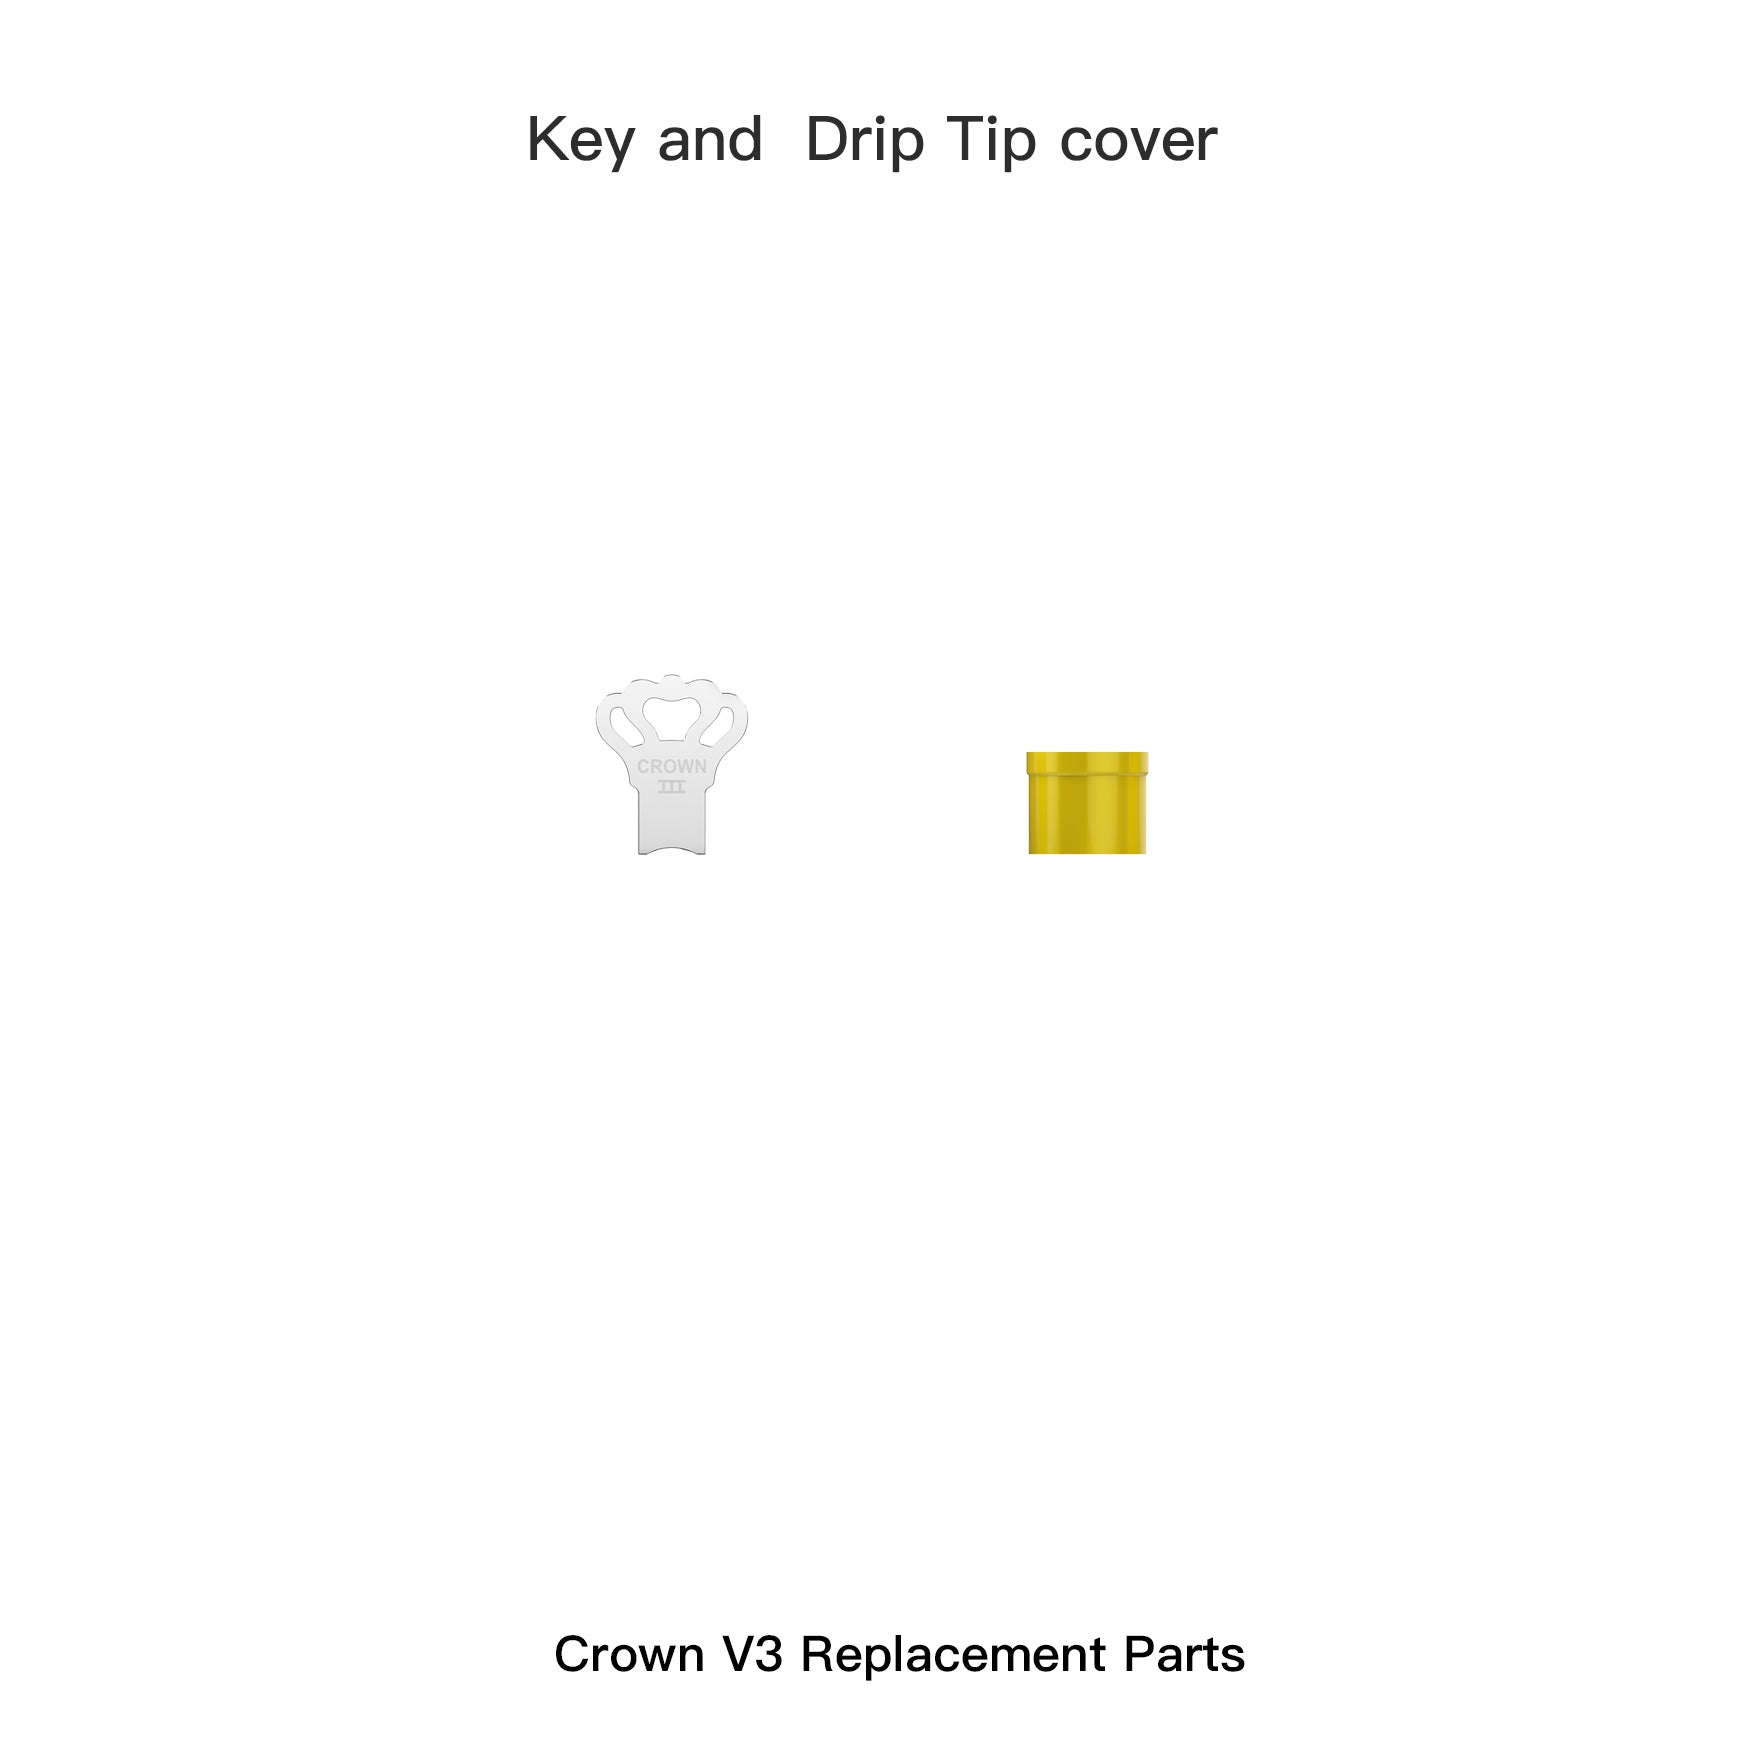 Crown 3 Key and Crown 3 Drip Tip cover